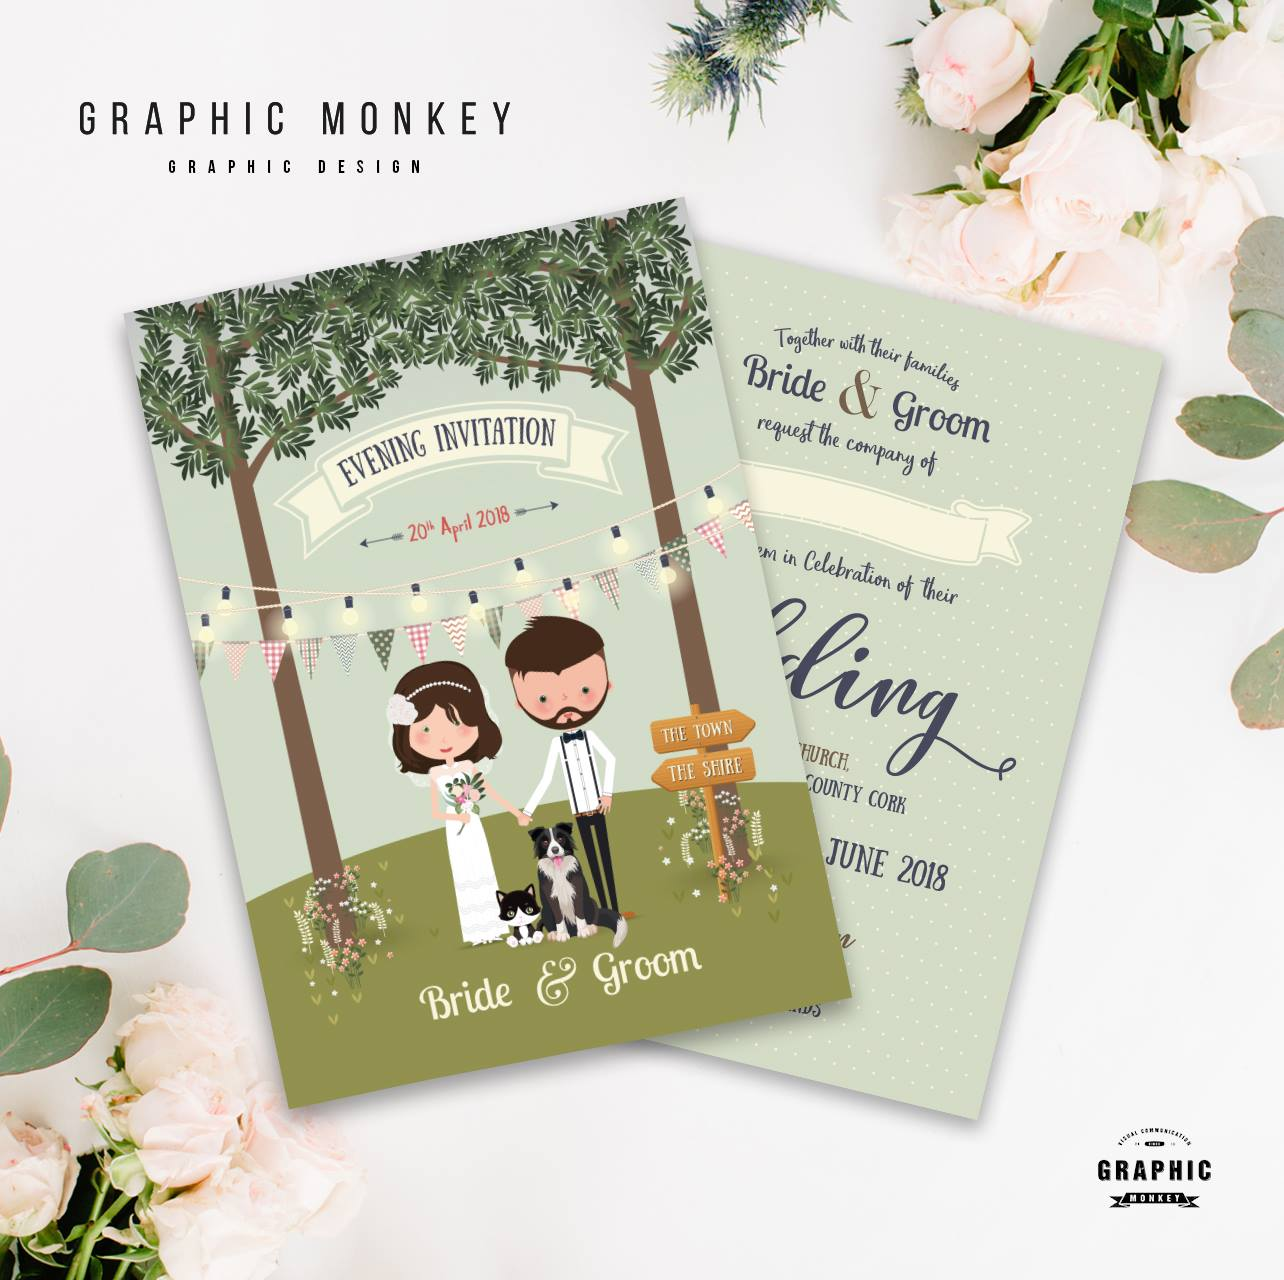 18 Beautifully Illustrated Wedding Invitations images 0